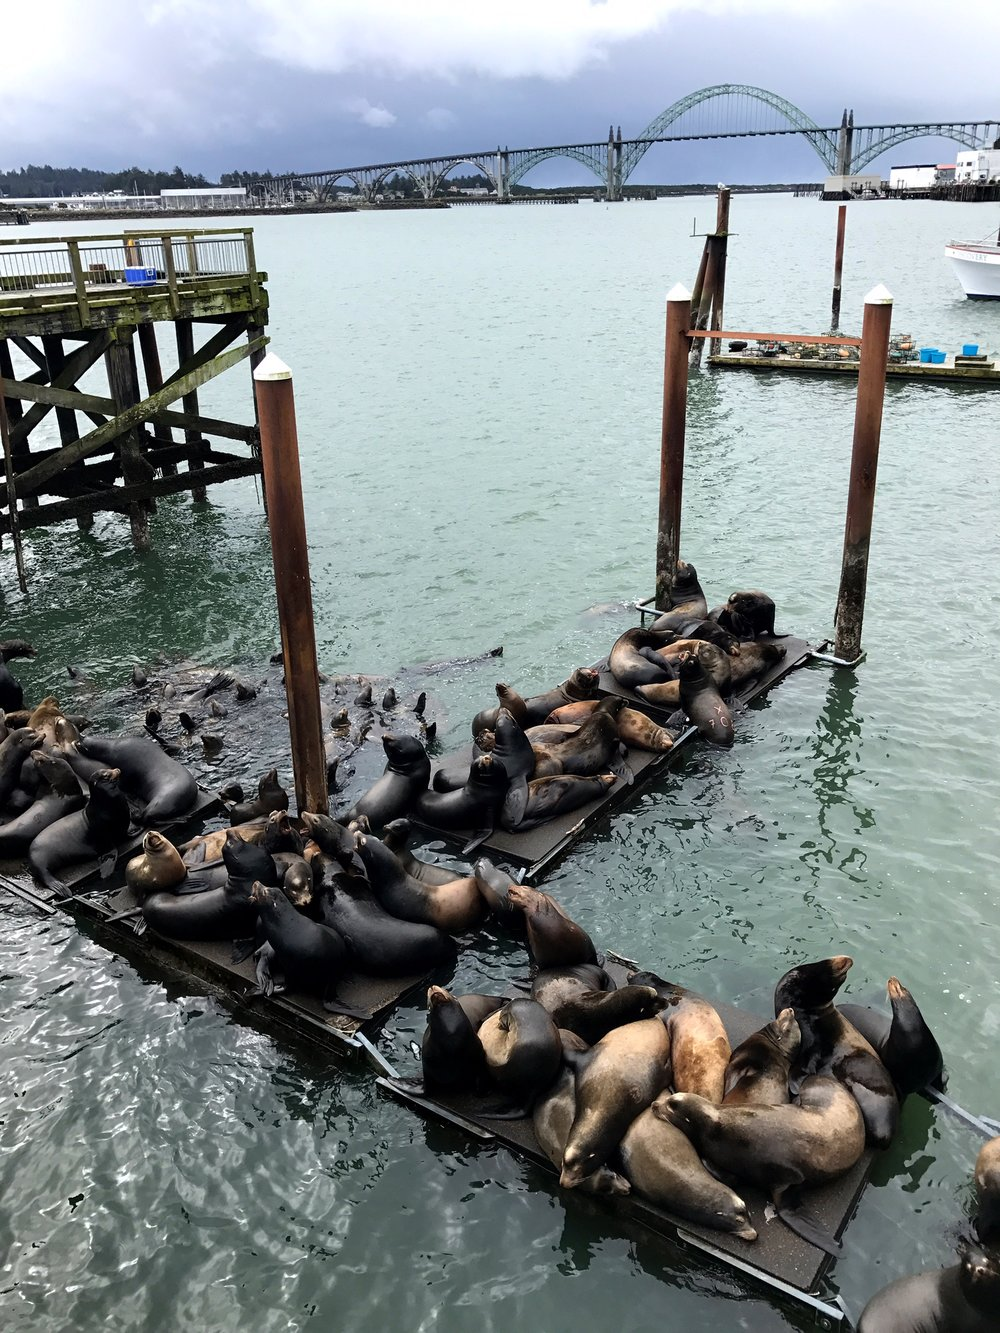 Sea Lions lounging on the dock in Newport, Oregon.